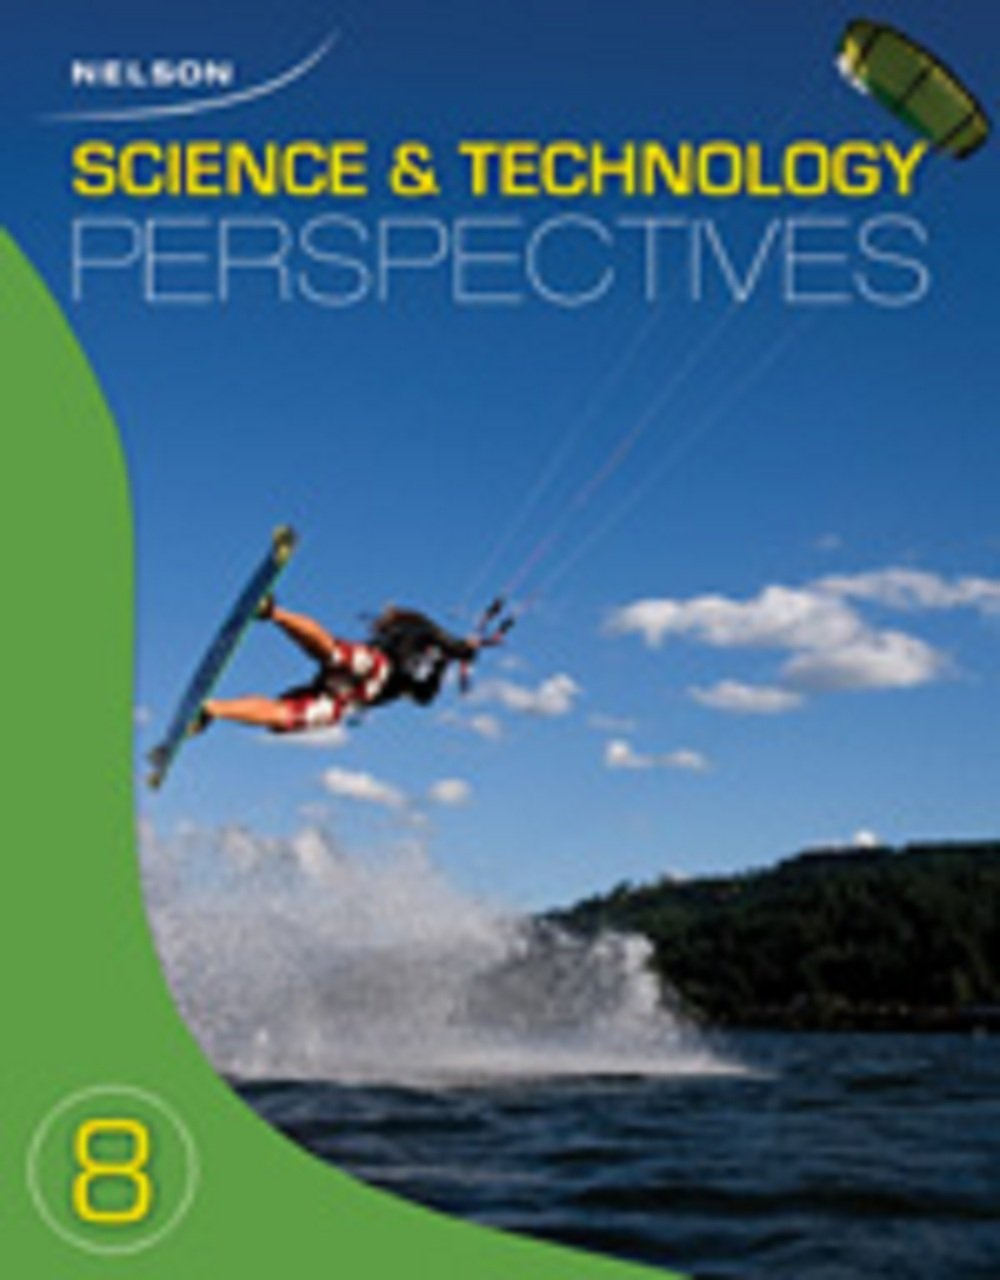 NELSON SCIENCE 9 PERSPECTIVES EPUB